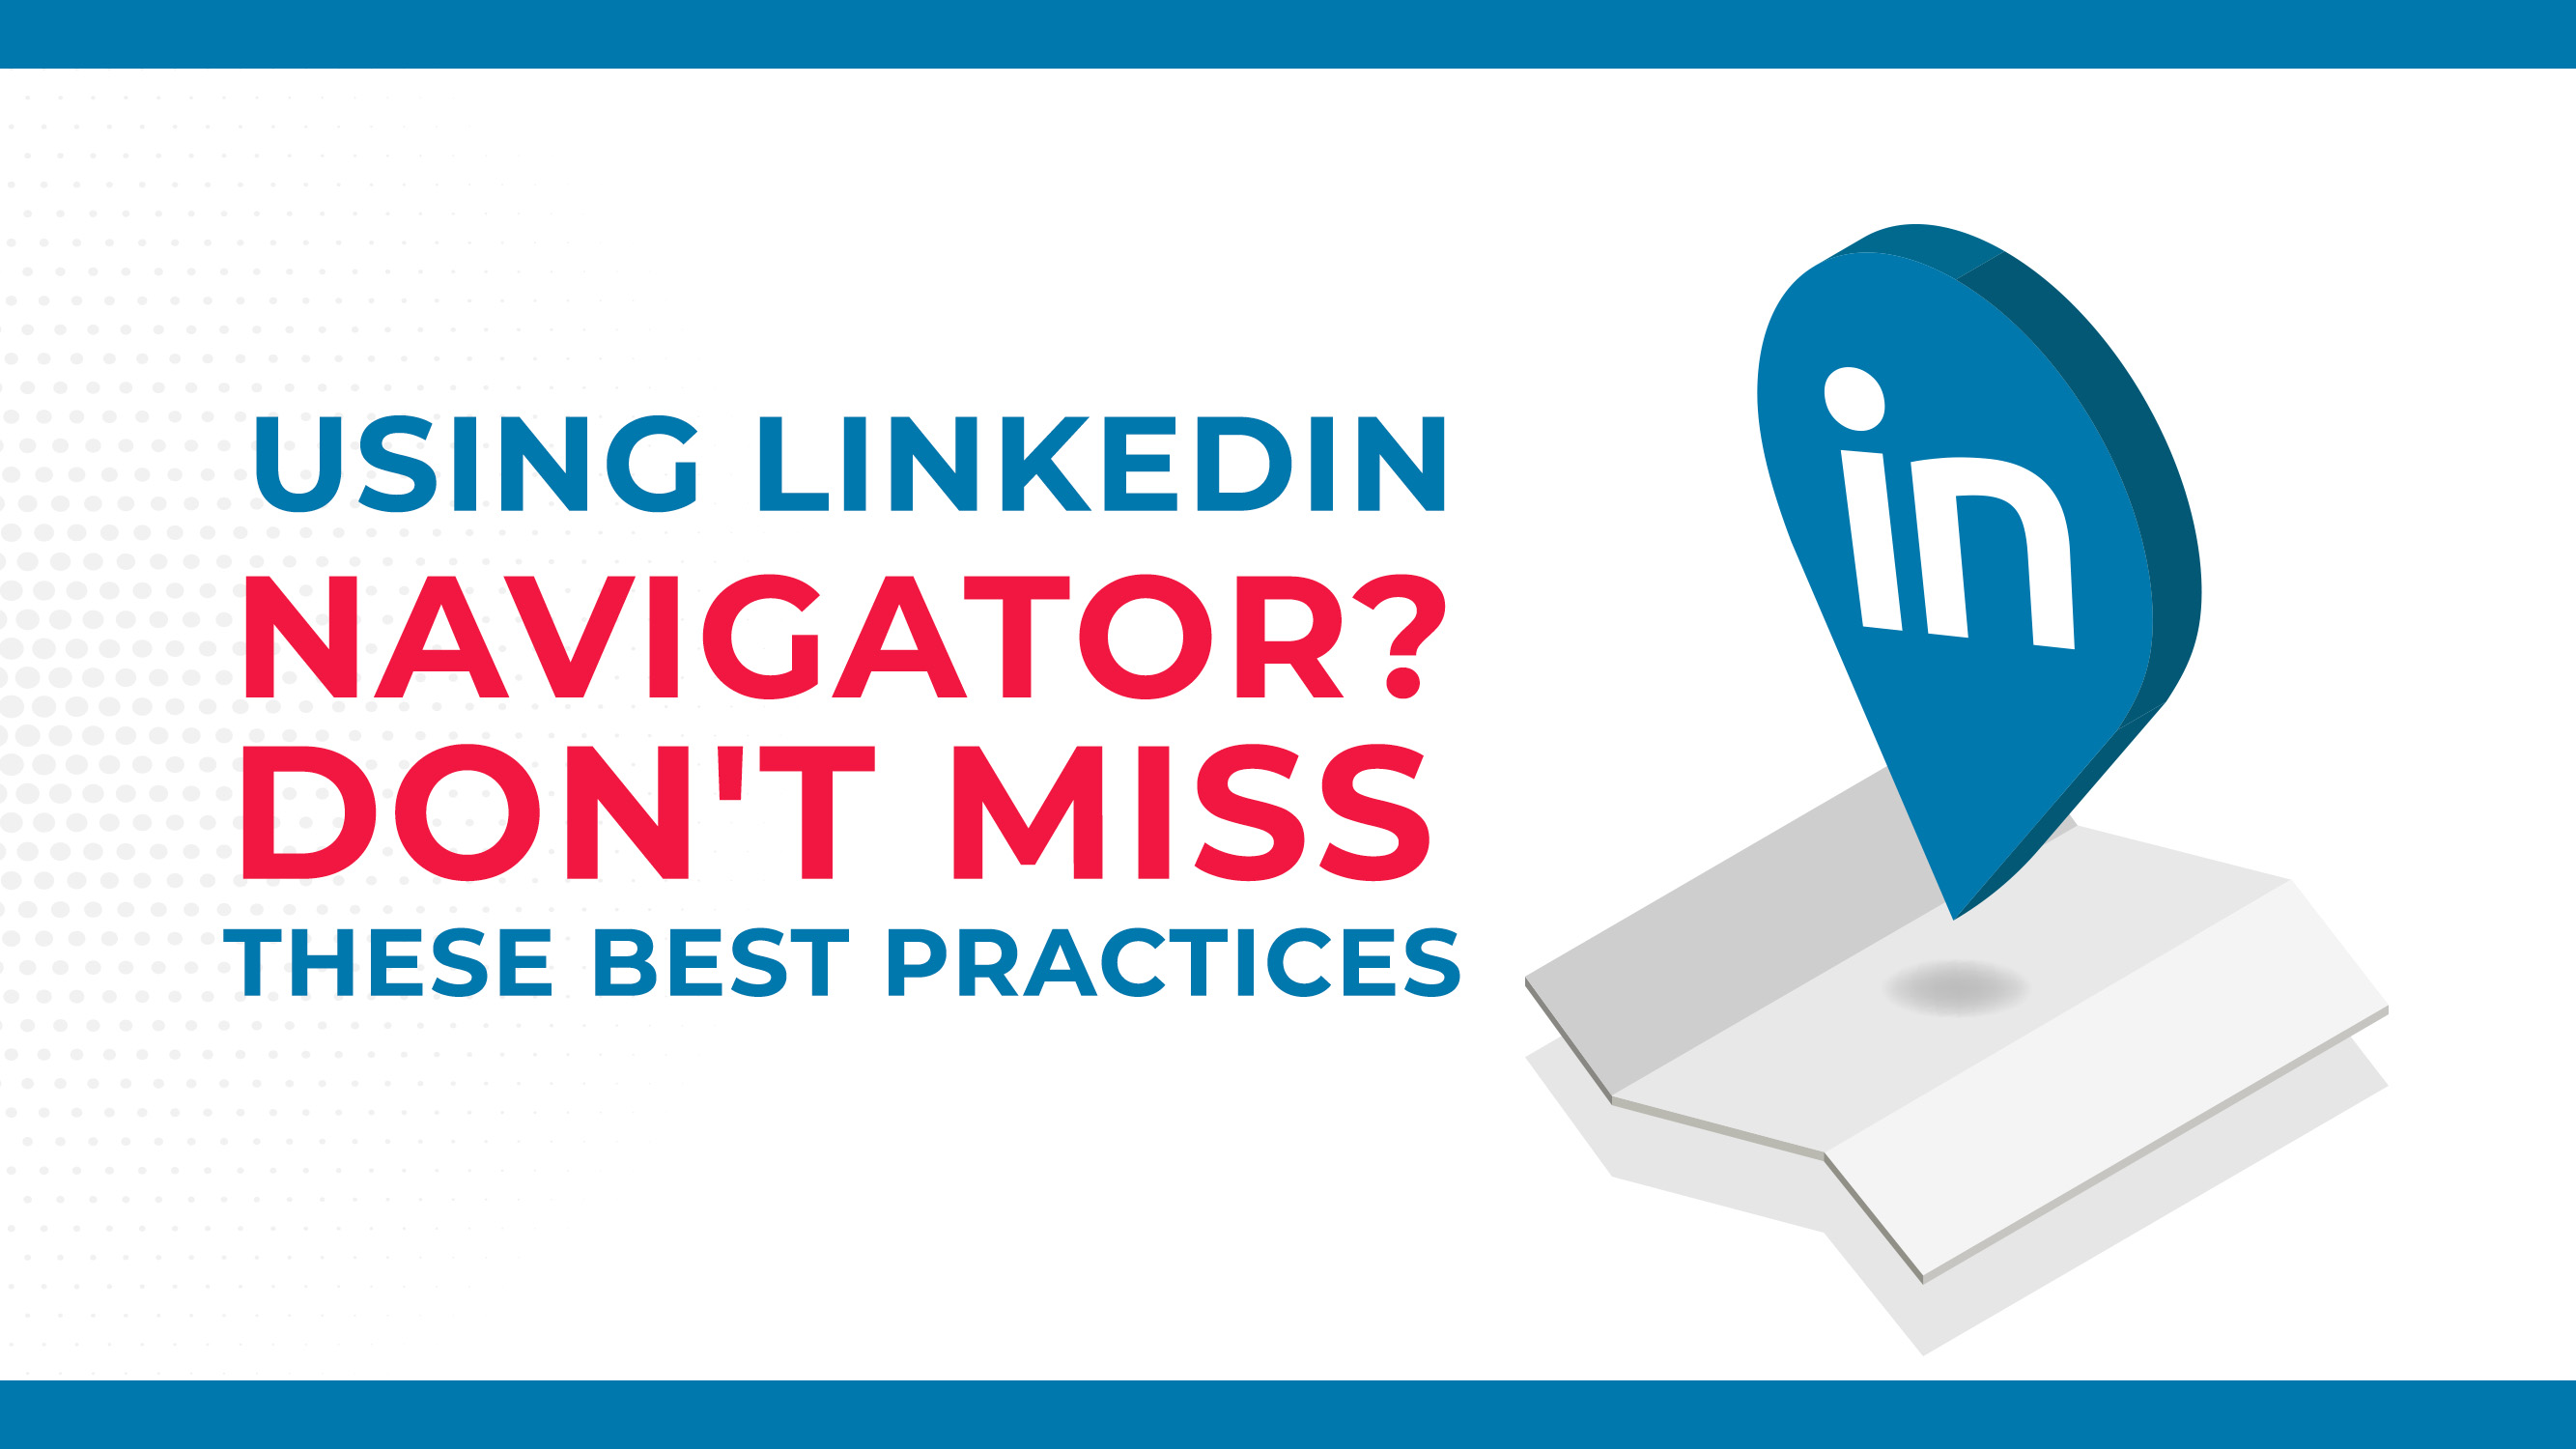 Using LinkedIn Navigator? Don't Miss These Best Practices